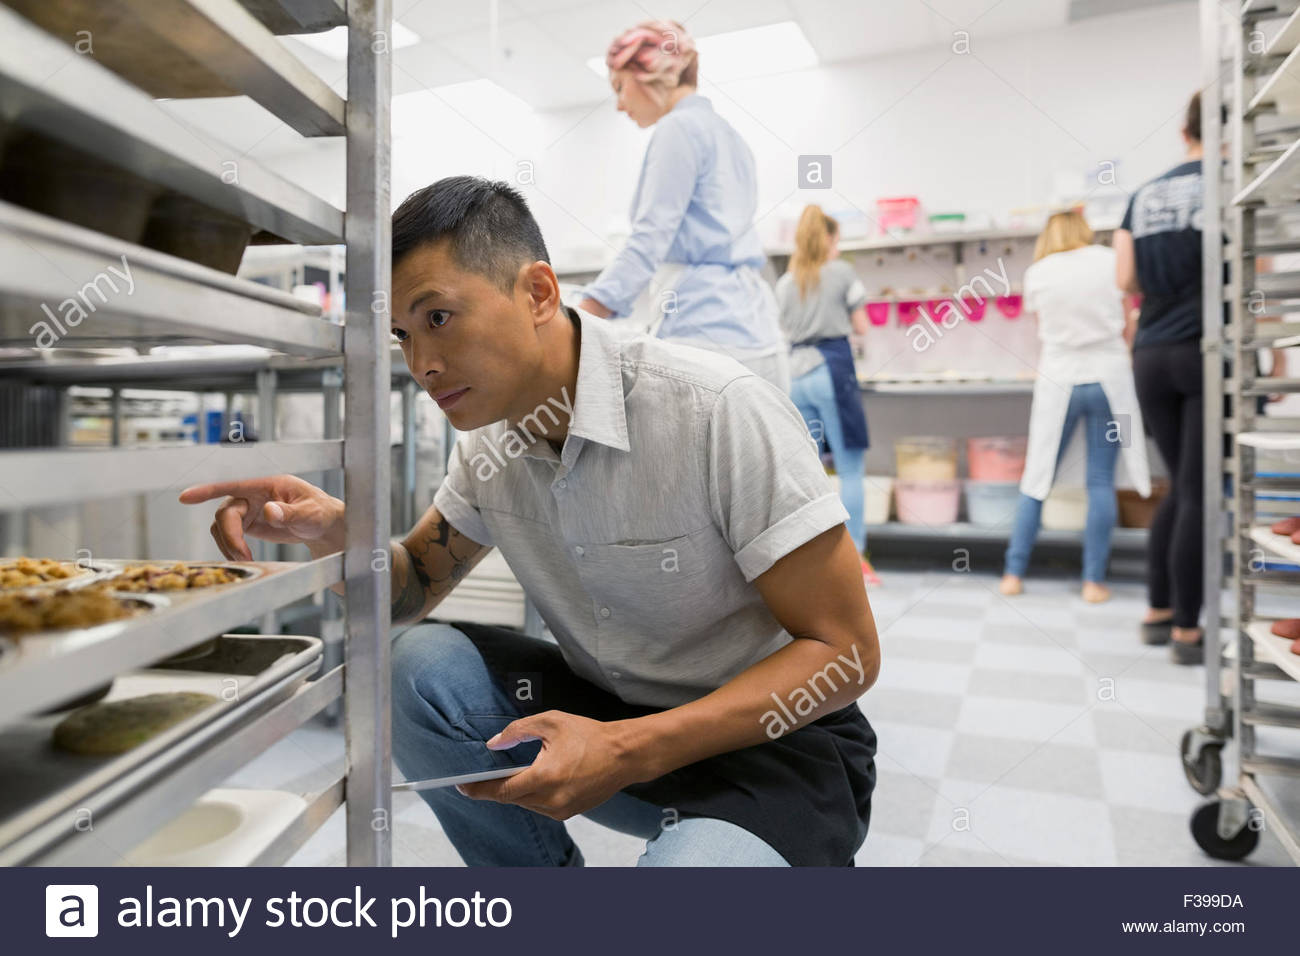 Pastry chef counting muffins on racks commercial kitchen - Stock Image